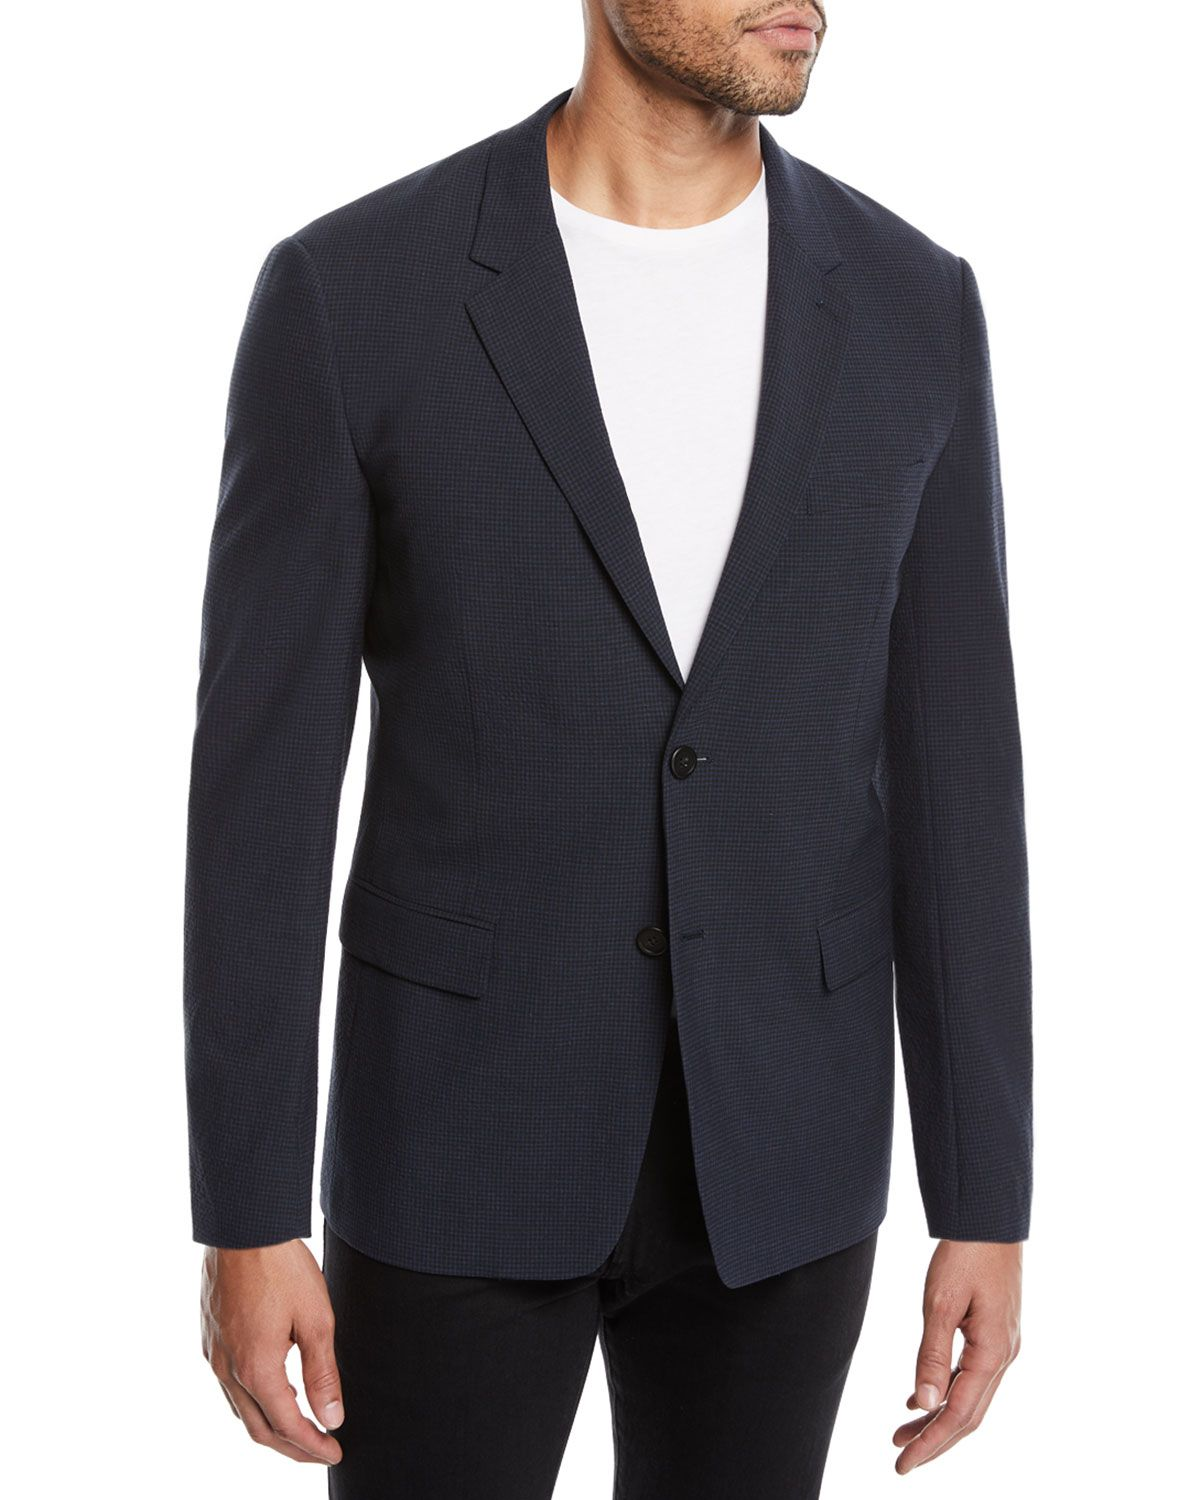 849492a3f9a THEORY MEN'S GANSEVOORT FUNCTION SEERSUCKER JACKET. #theory #cloth ...